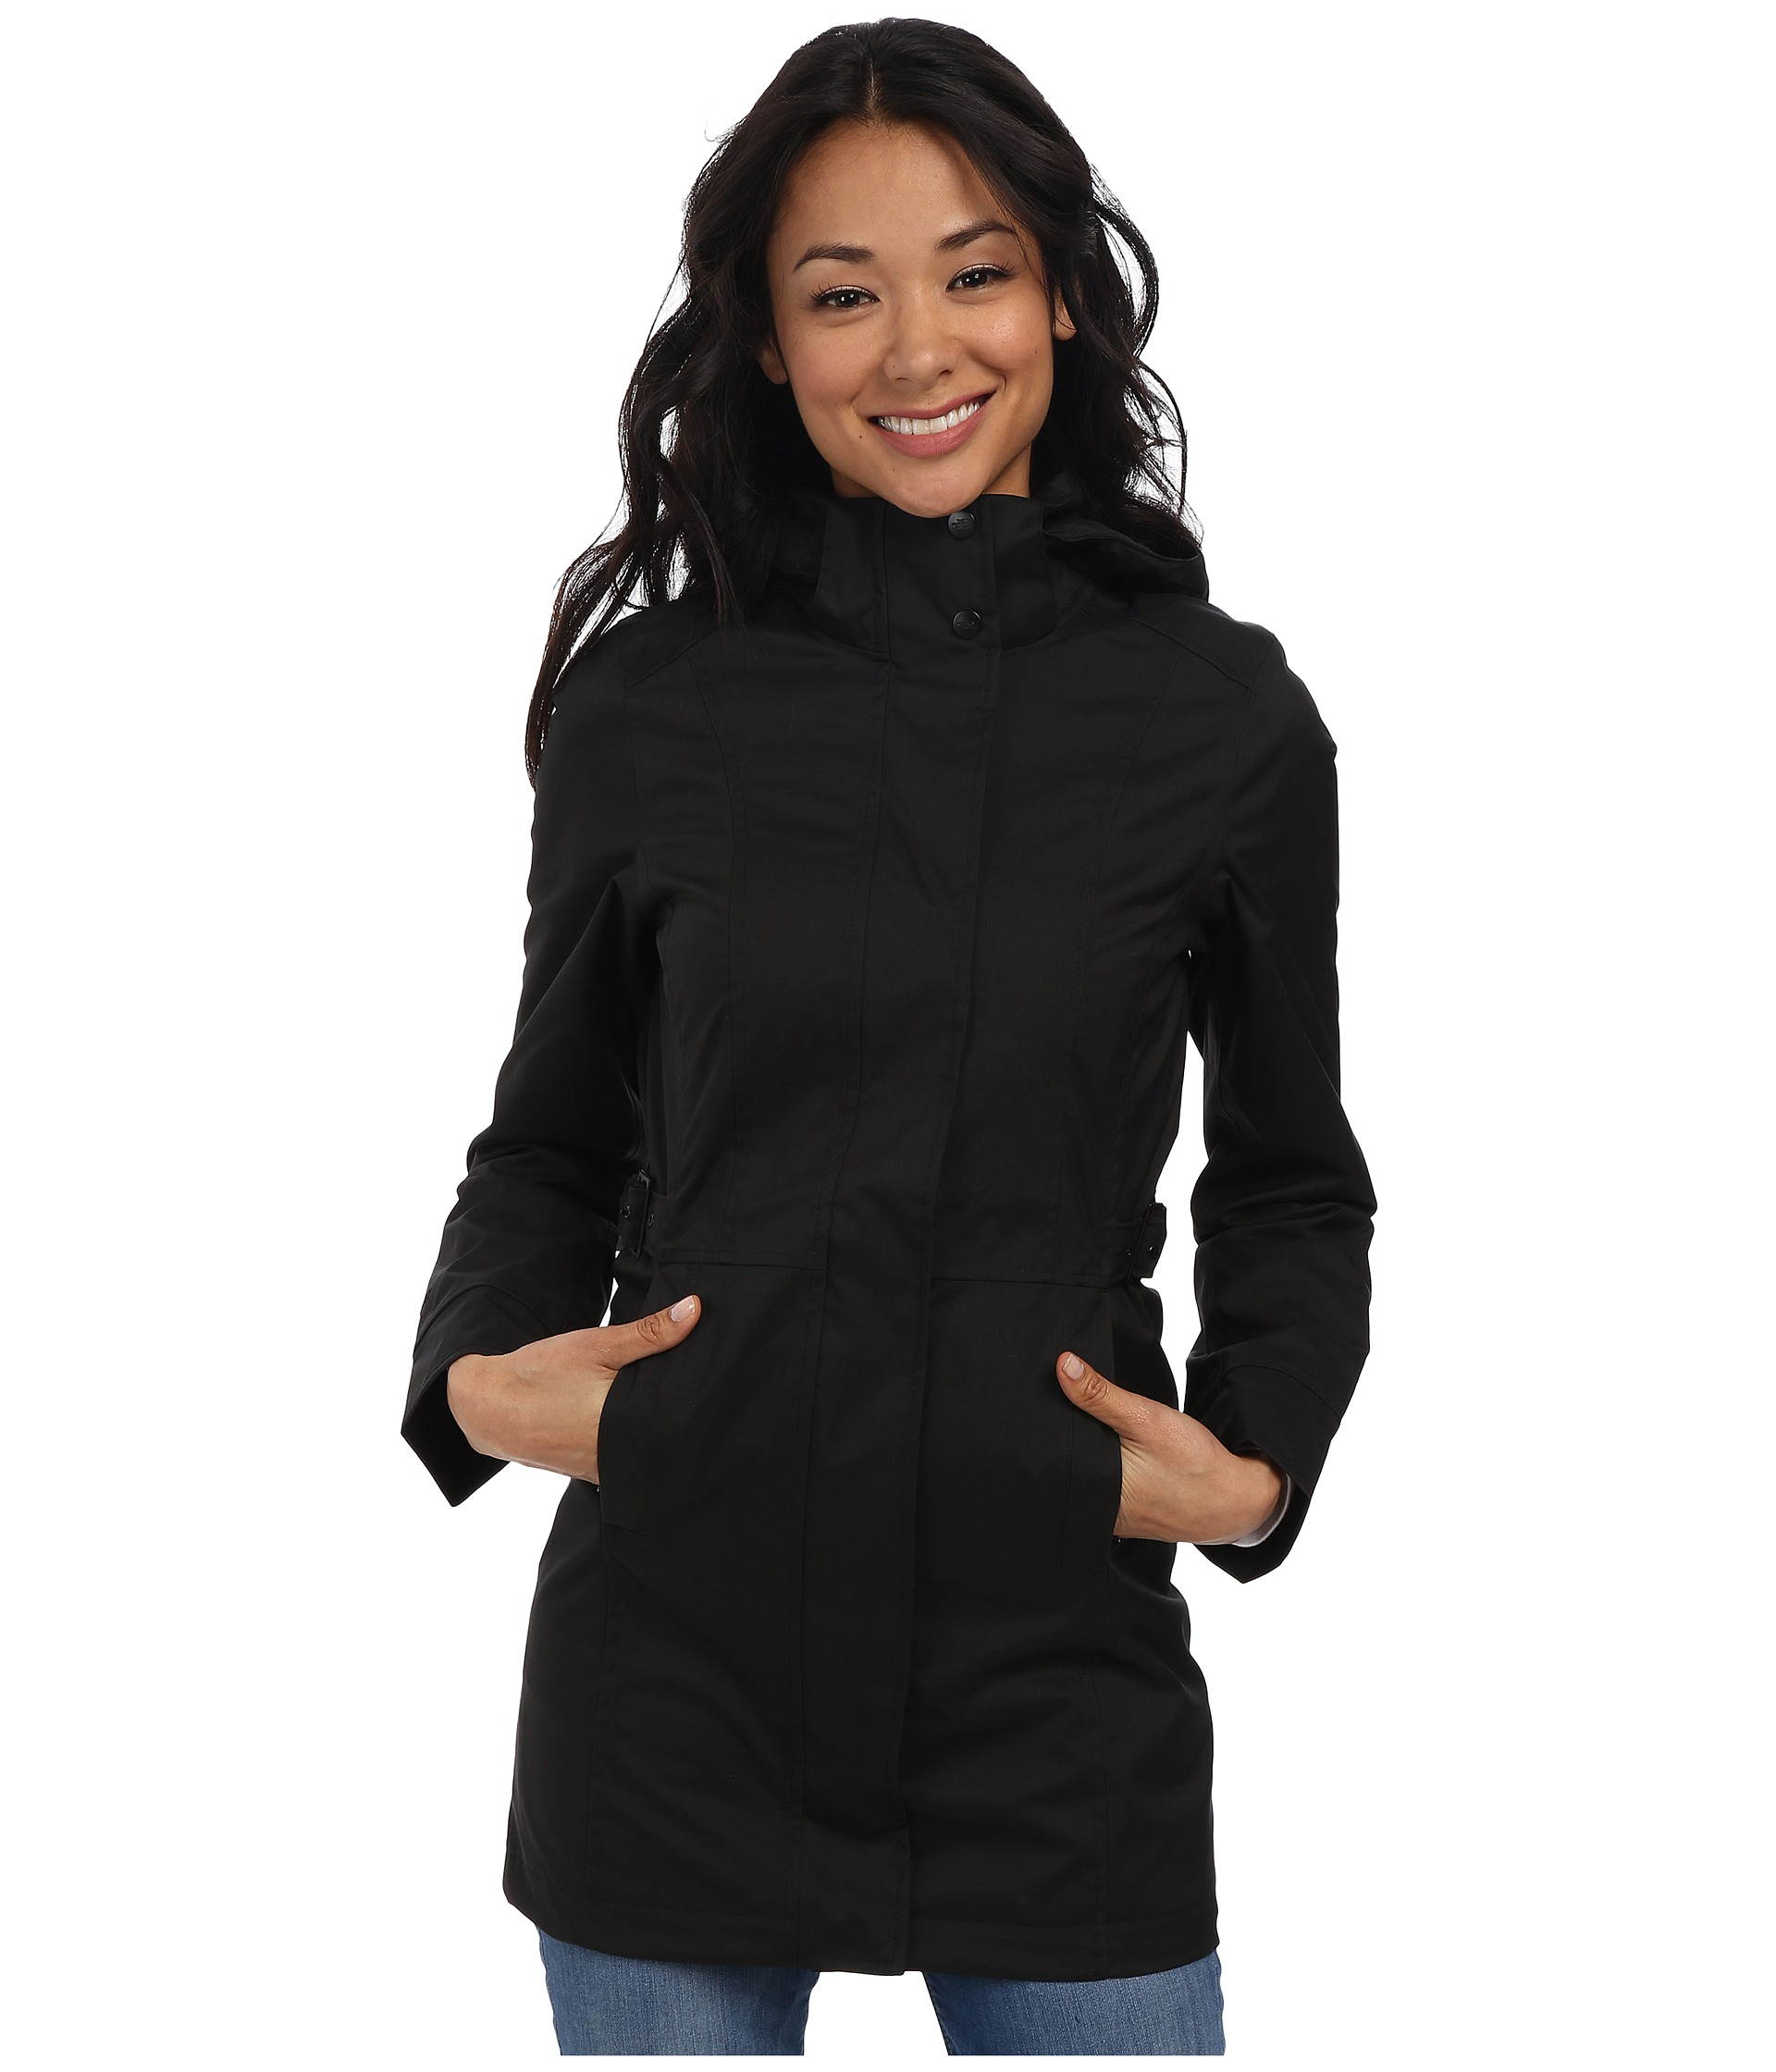 special selection of cheaper sale best website The North Face Laney Trench in Black - Lyst